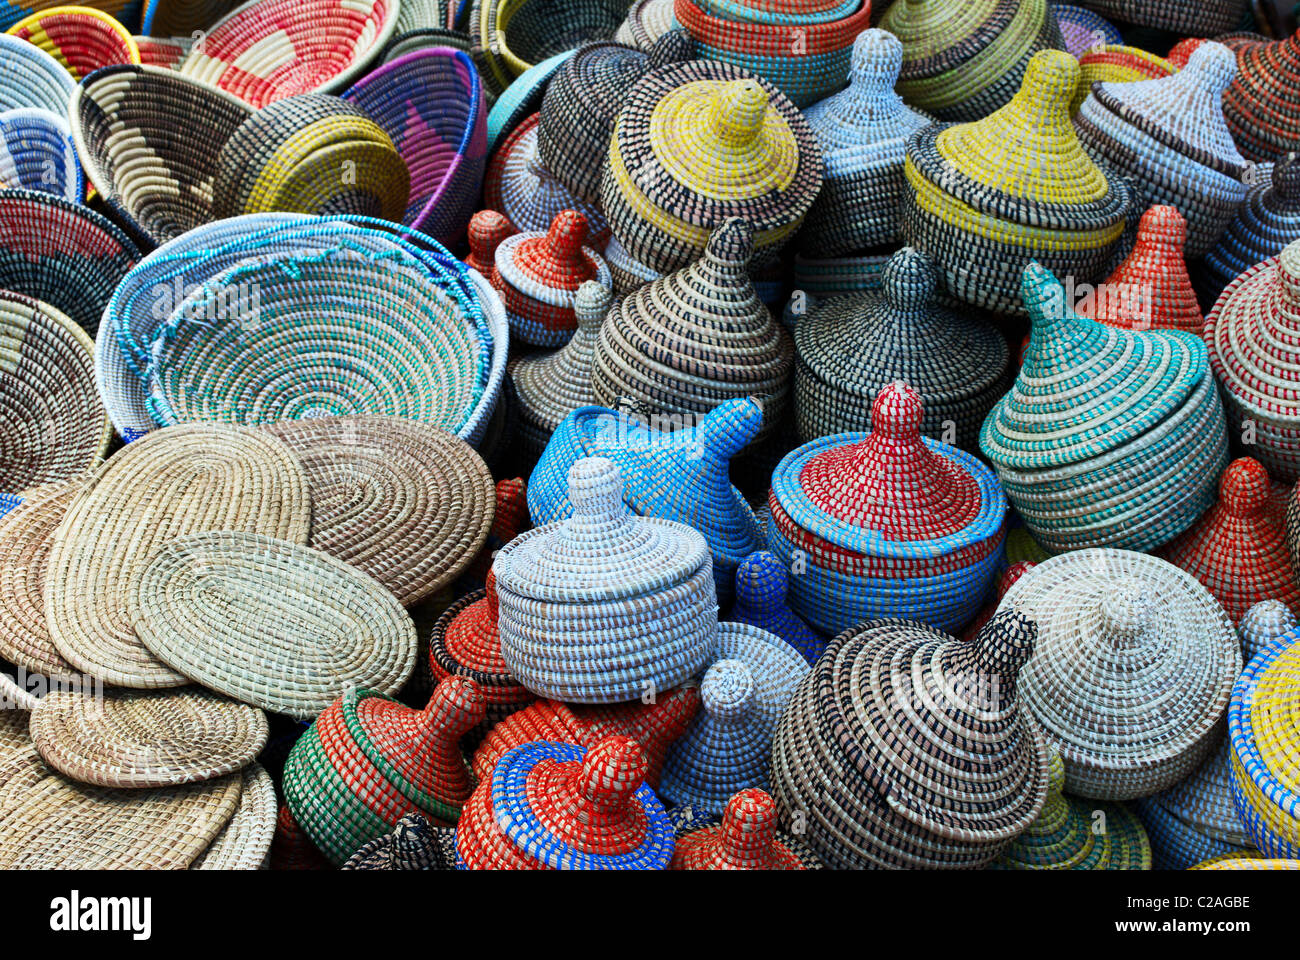 Group of multicolored woven baskets (selective focus the ones at the bottom of the image) - Stock Image